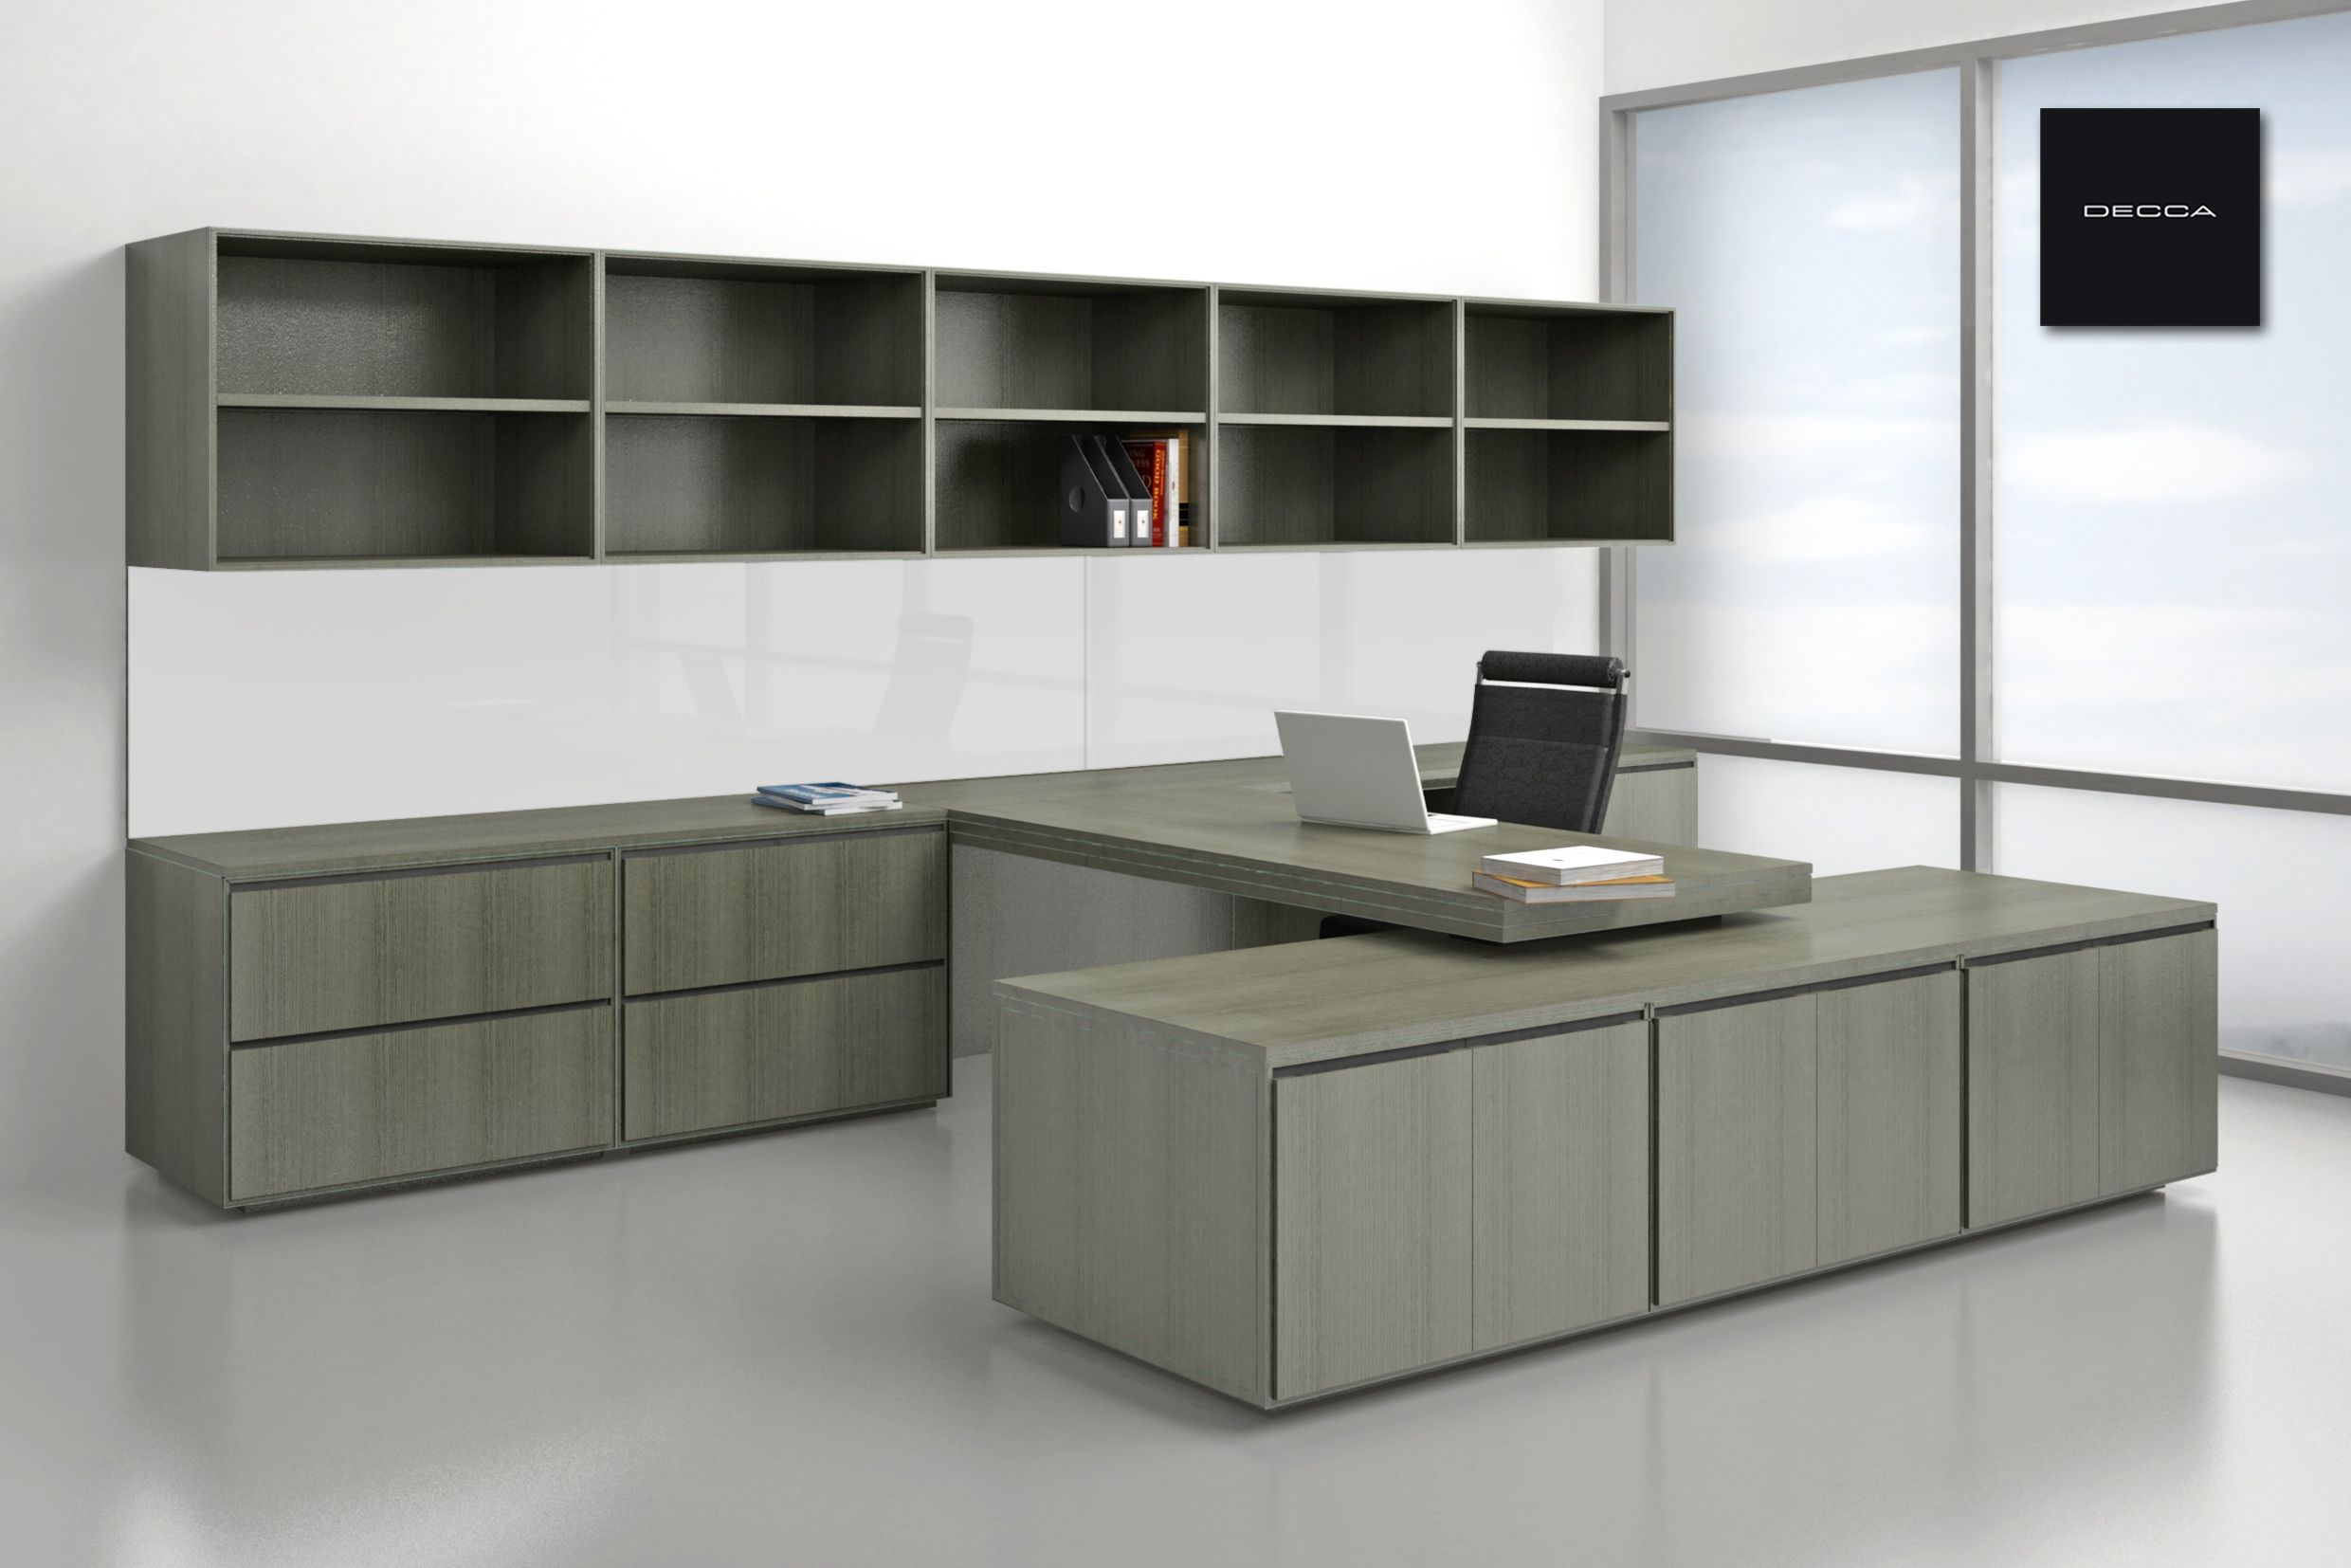 High Tech Office With Hardwood Floors | Office Furniture Deals Blog: Mind  Blowing Professional Office ... | Office Design Ideas | Pinterest | Office  ...